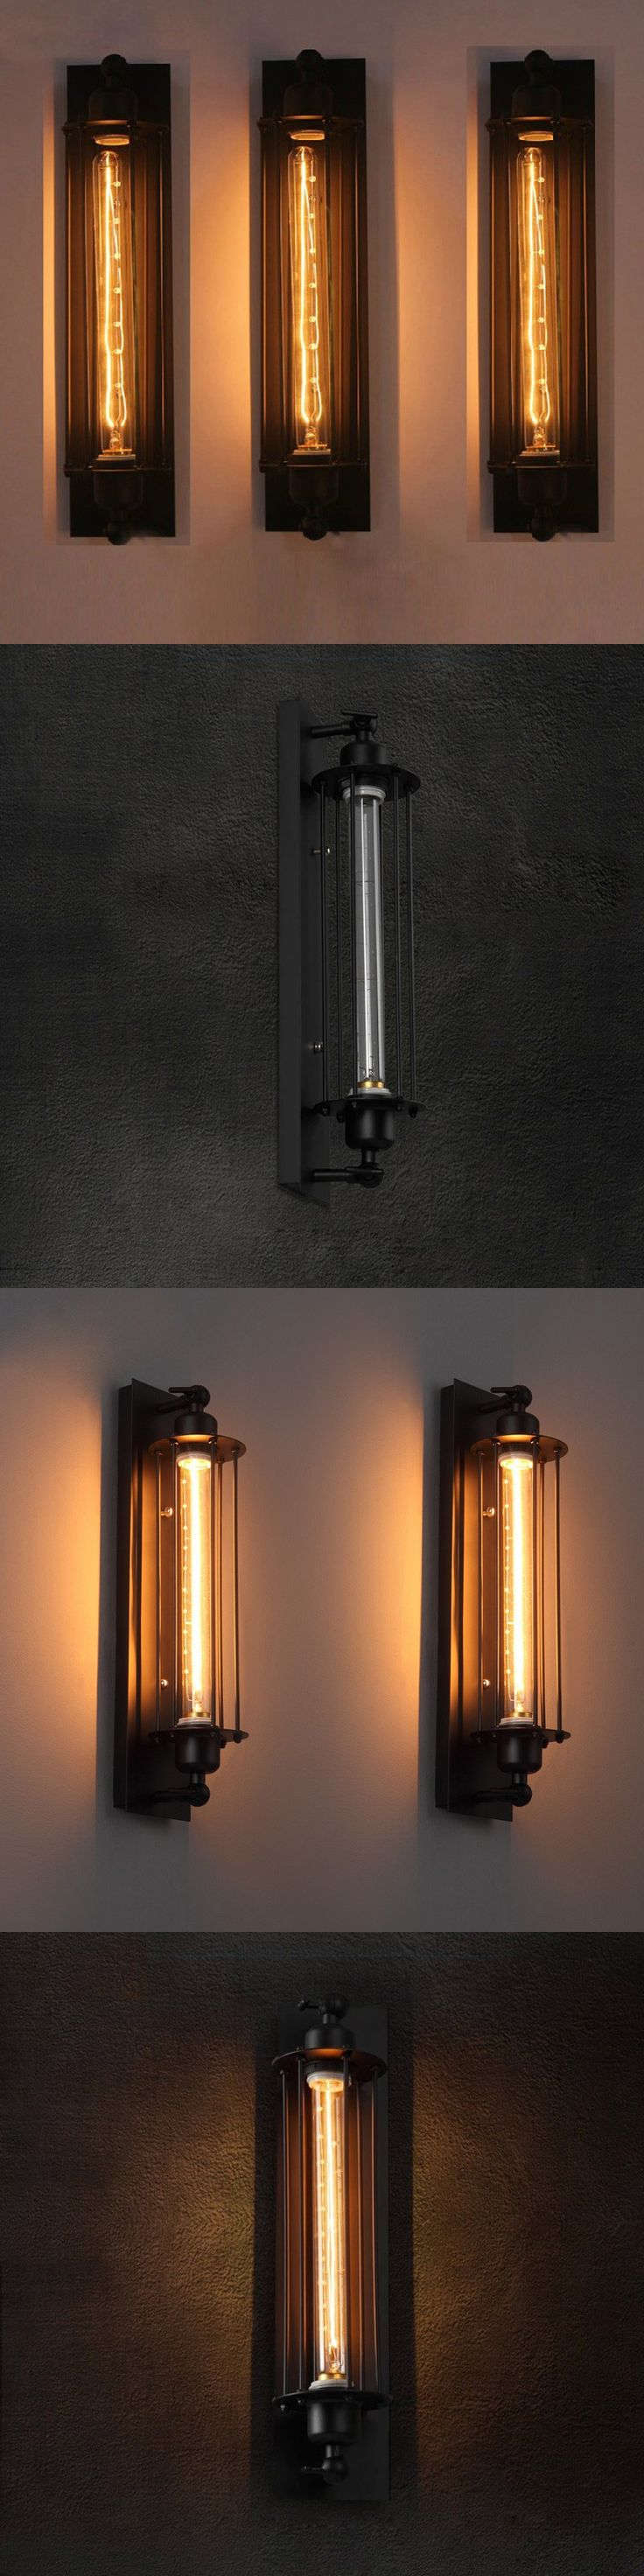 Indoor decorative led ceiling lights wall lamps china led ceiling - Loft Vintage Wall Lamps American Industrial Wall Light Bedside Wall Fixtures Home Decoration Lighting Give Led Light Bulb